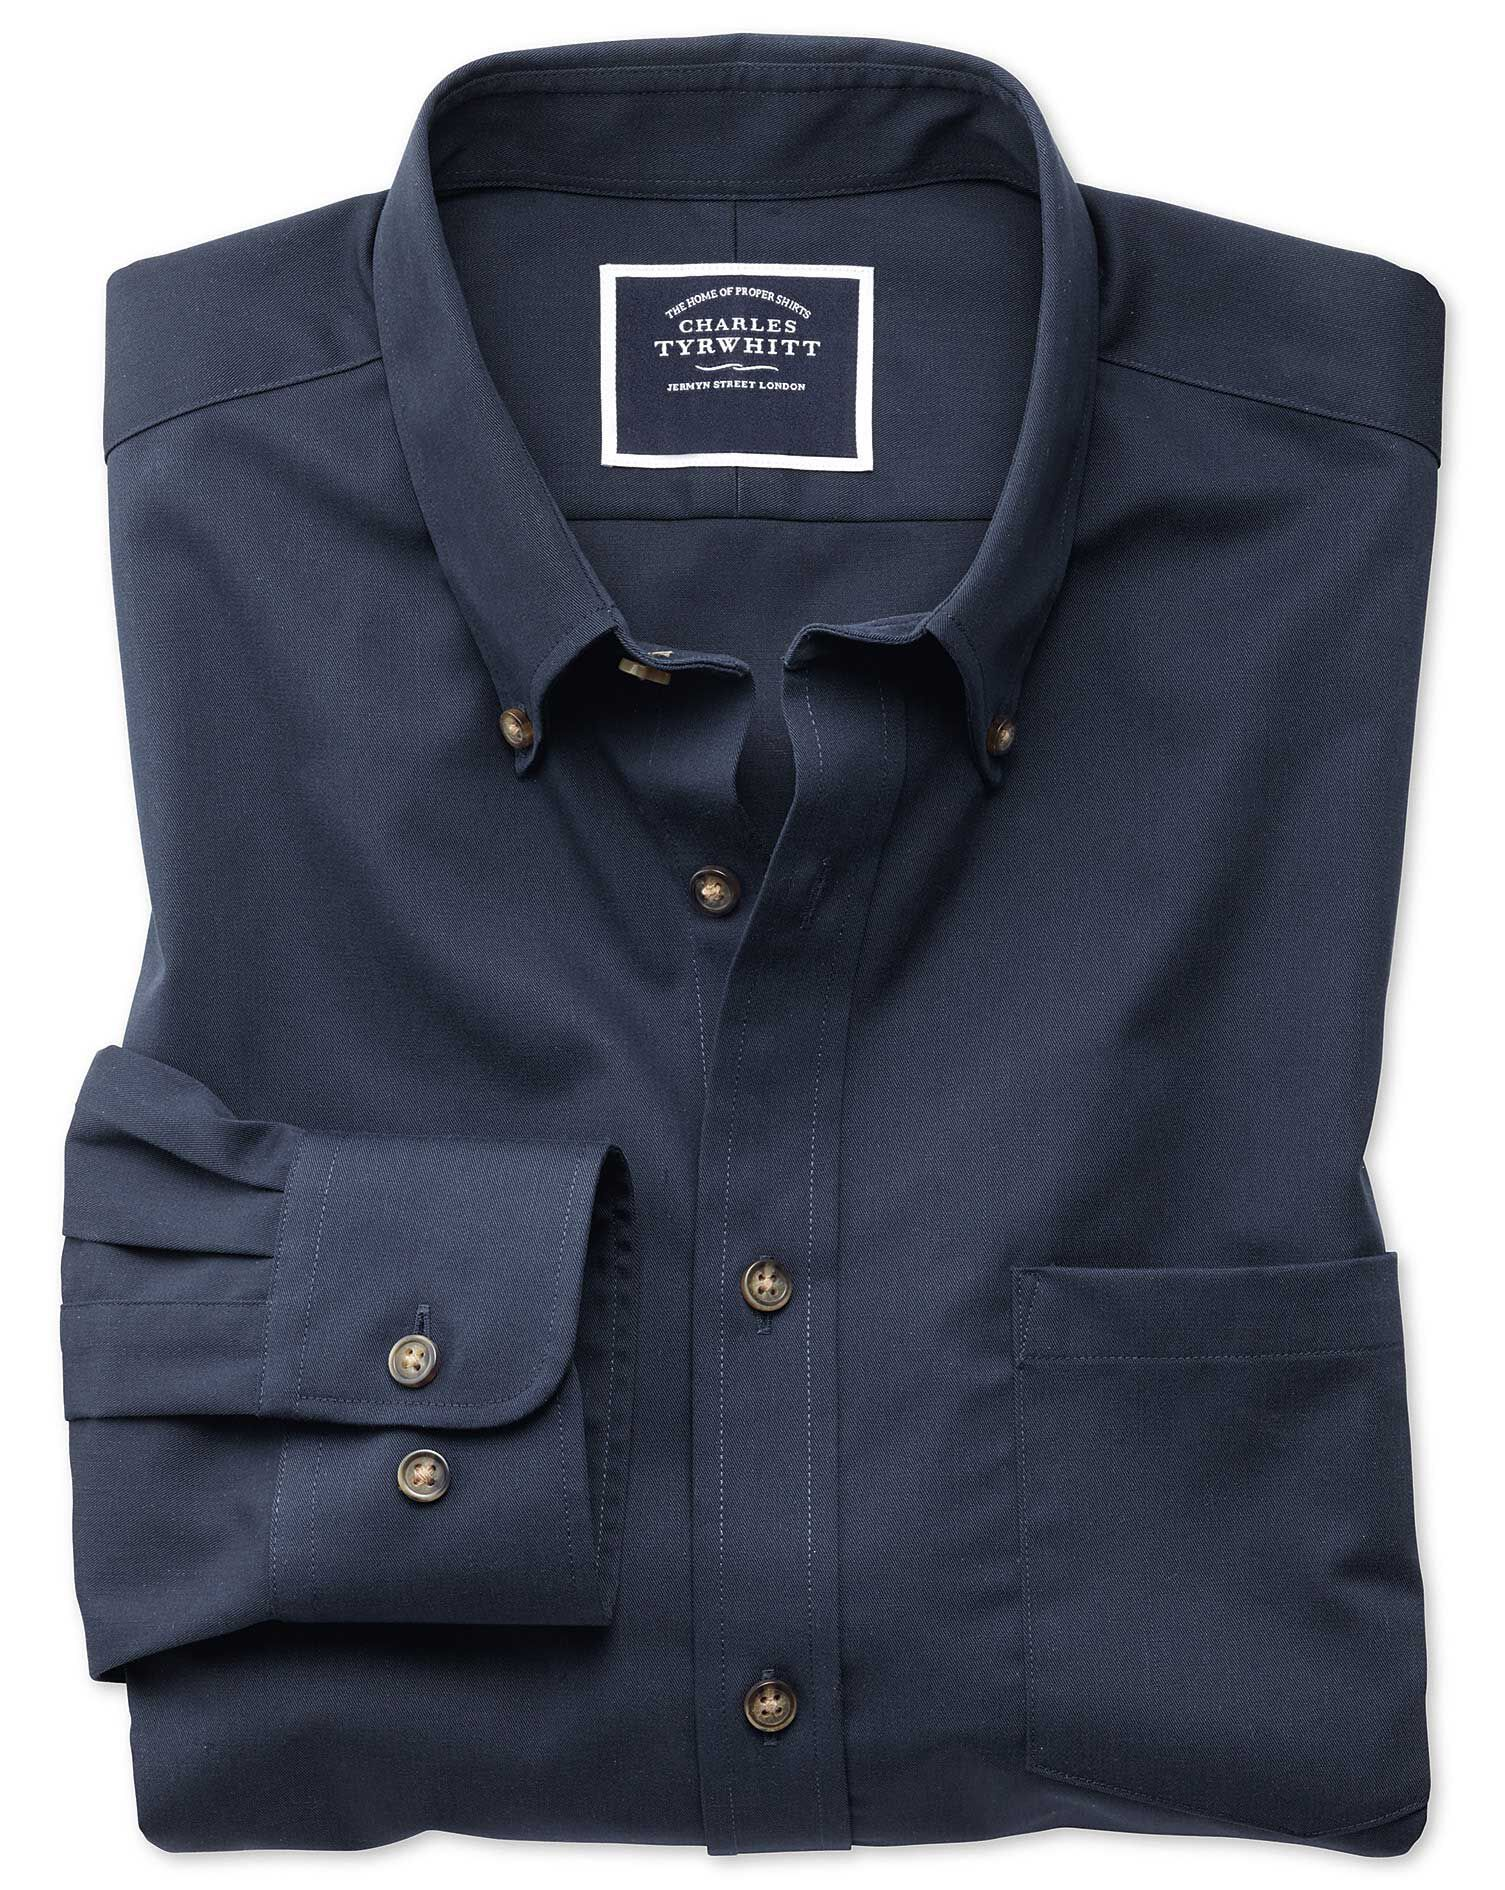 Extra Slim Fit Non-Iron Twill Navy Cotton Shirt Single Cuff Size Small by Charles Tyrwhitt